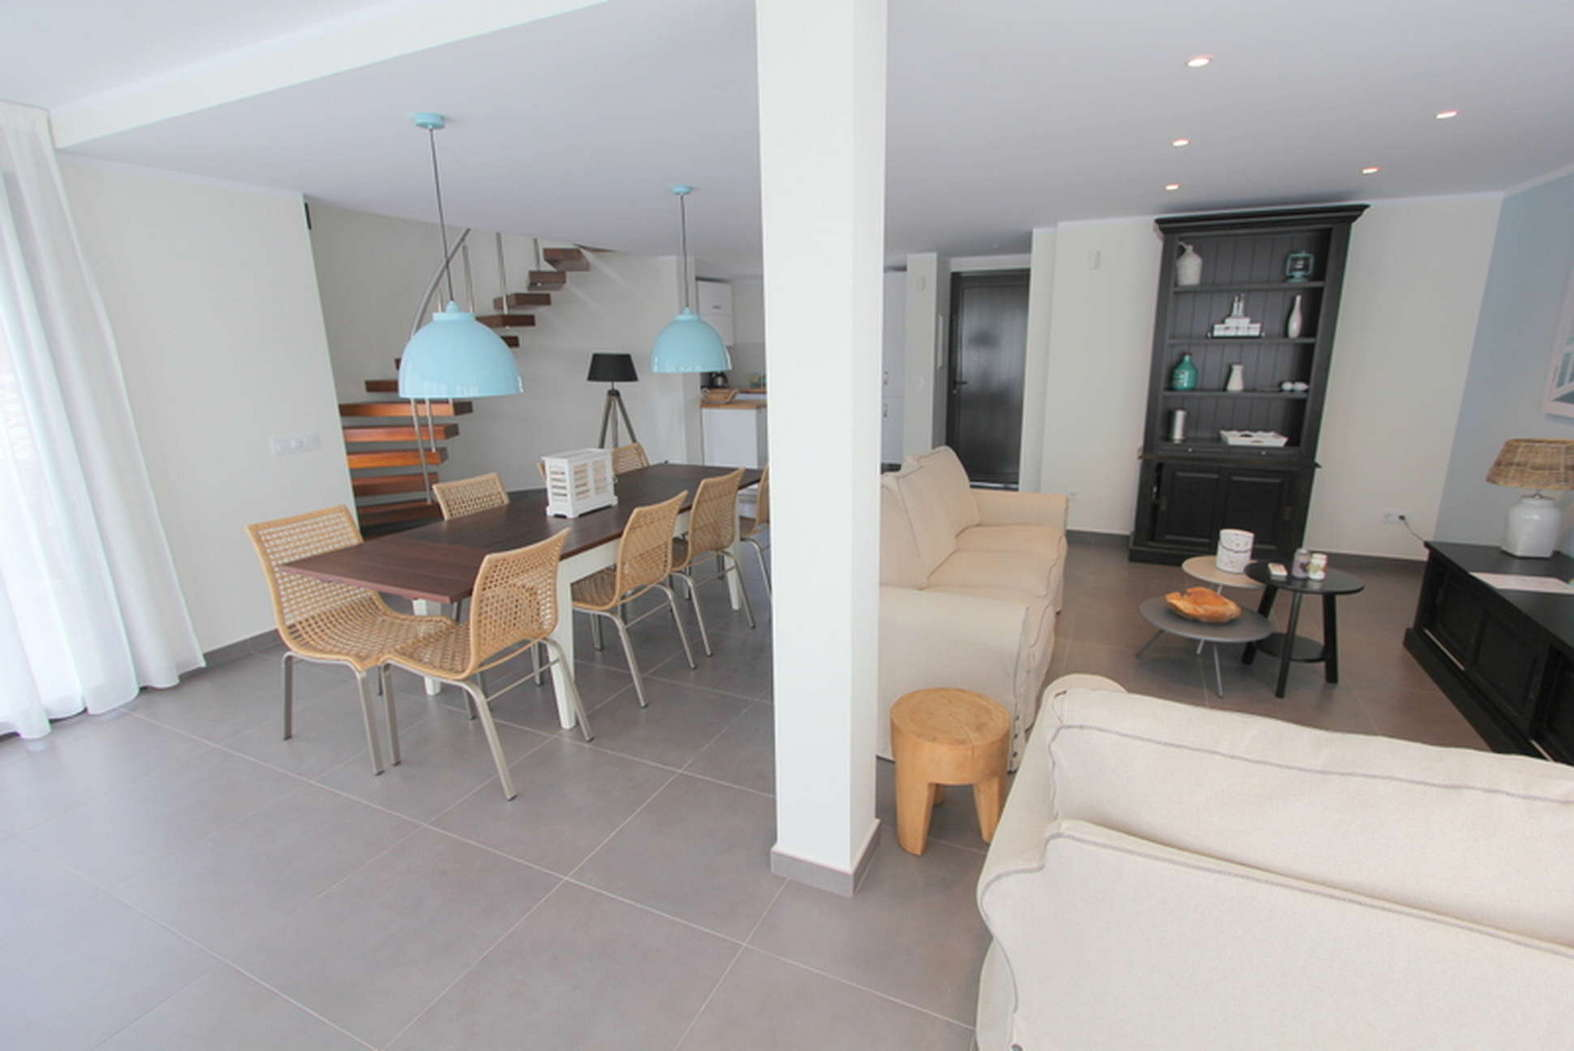 SPLENDID HOUSE ON THE CANAL RENOVATED FOR SALE IN EMPURIABRAVA